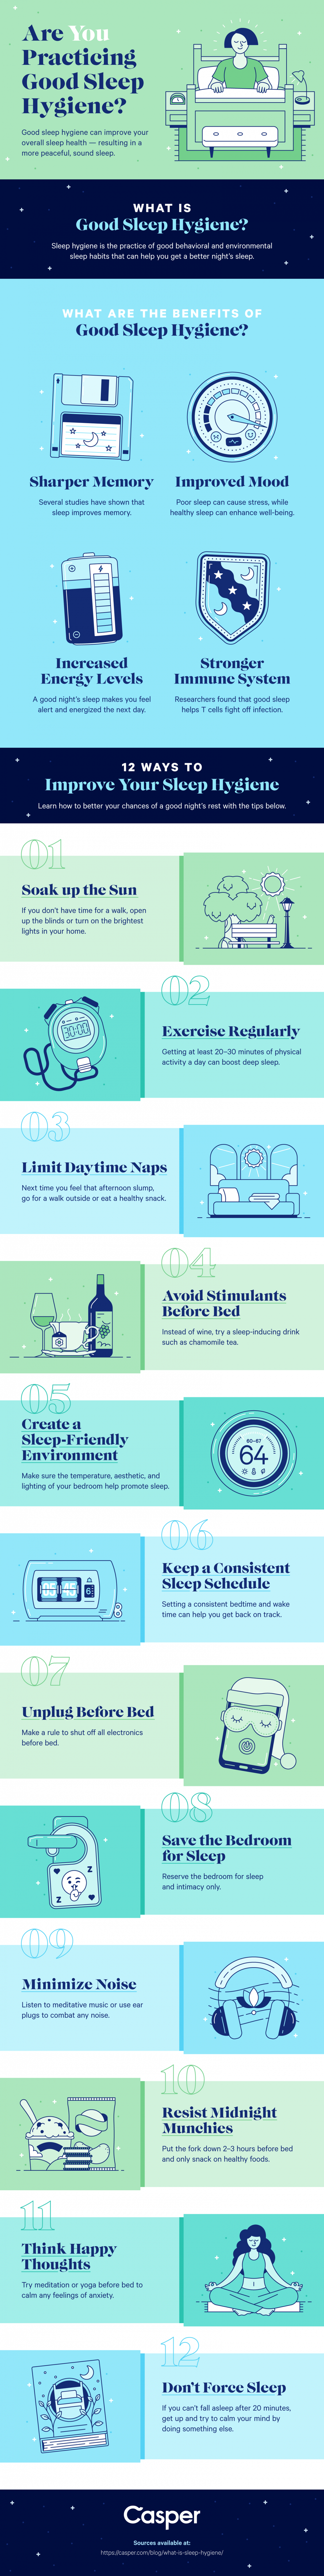 Sleep Hygiene infographic | From the blog of Nicholas C. Rossis, author of science fiction, the Pearseus epic fantasy series and children's books